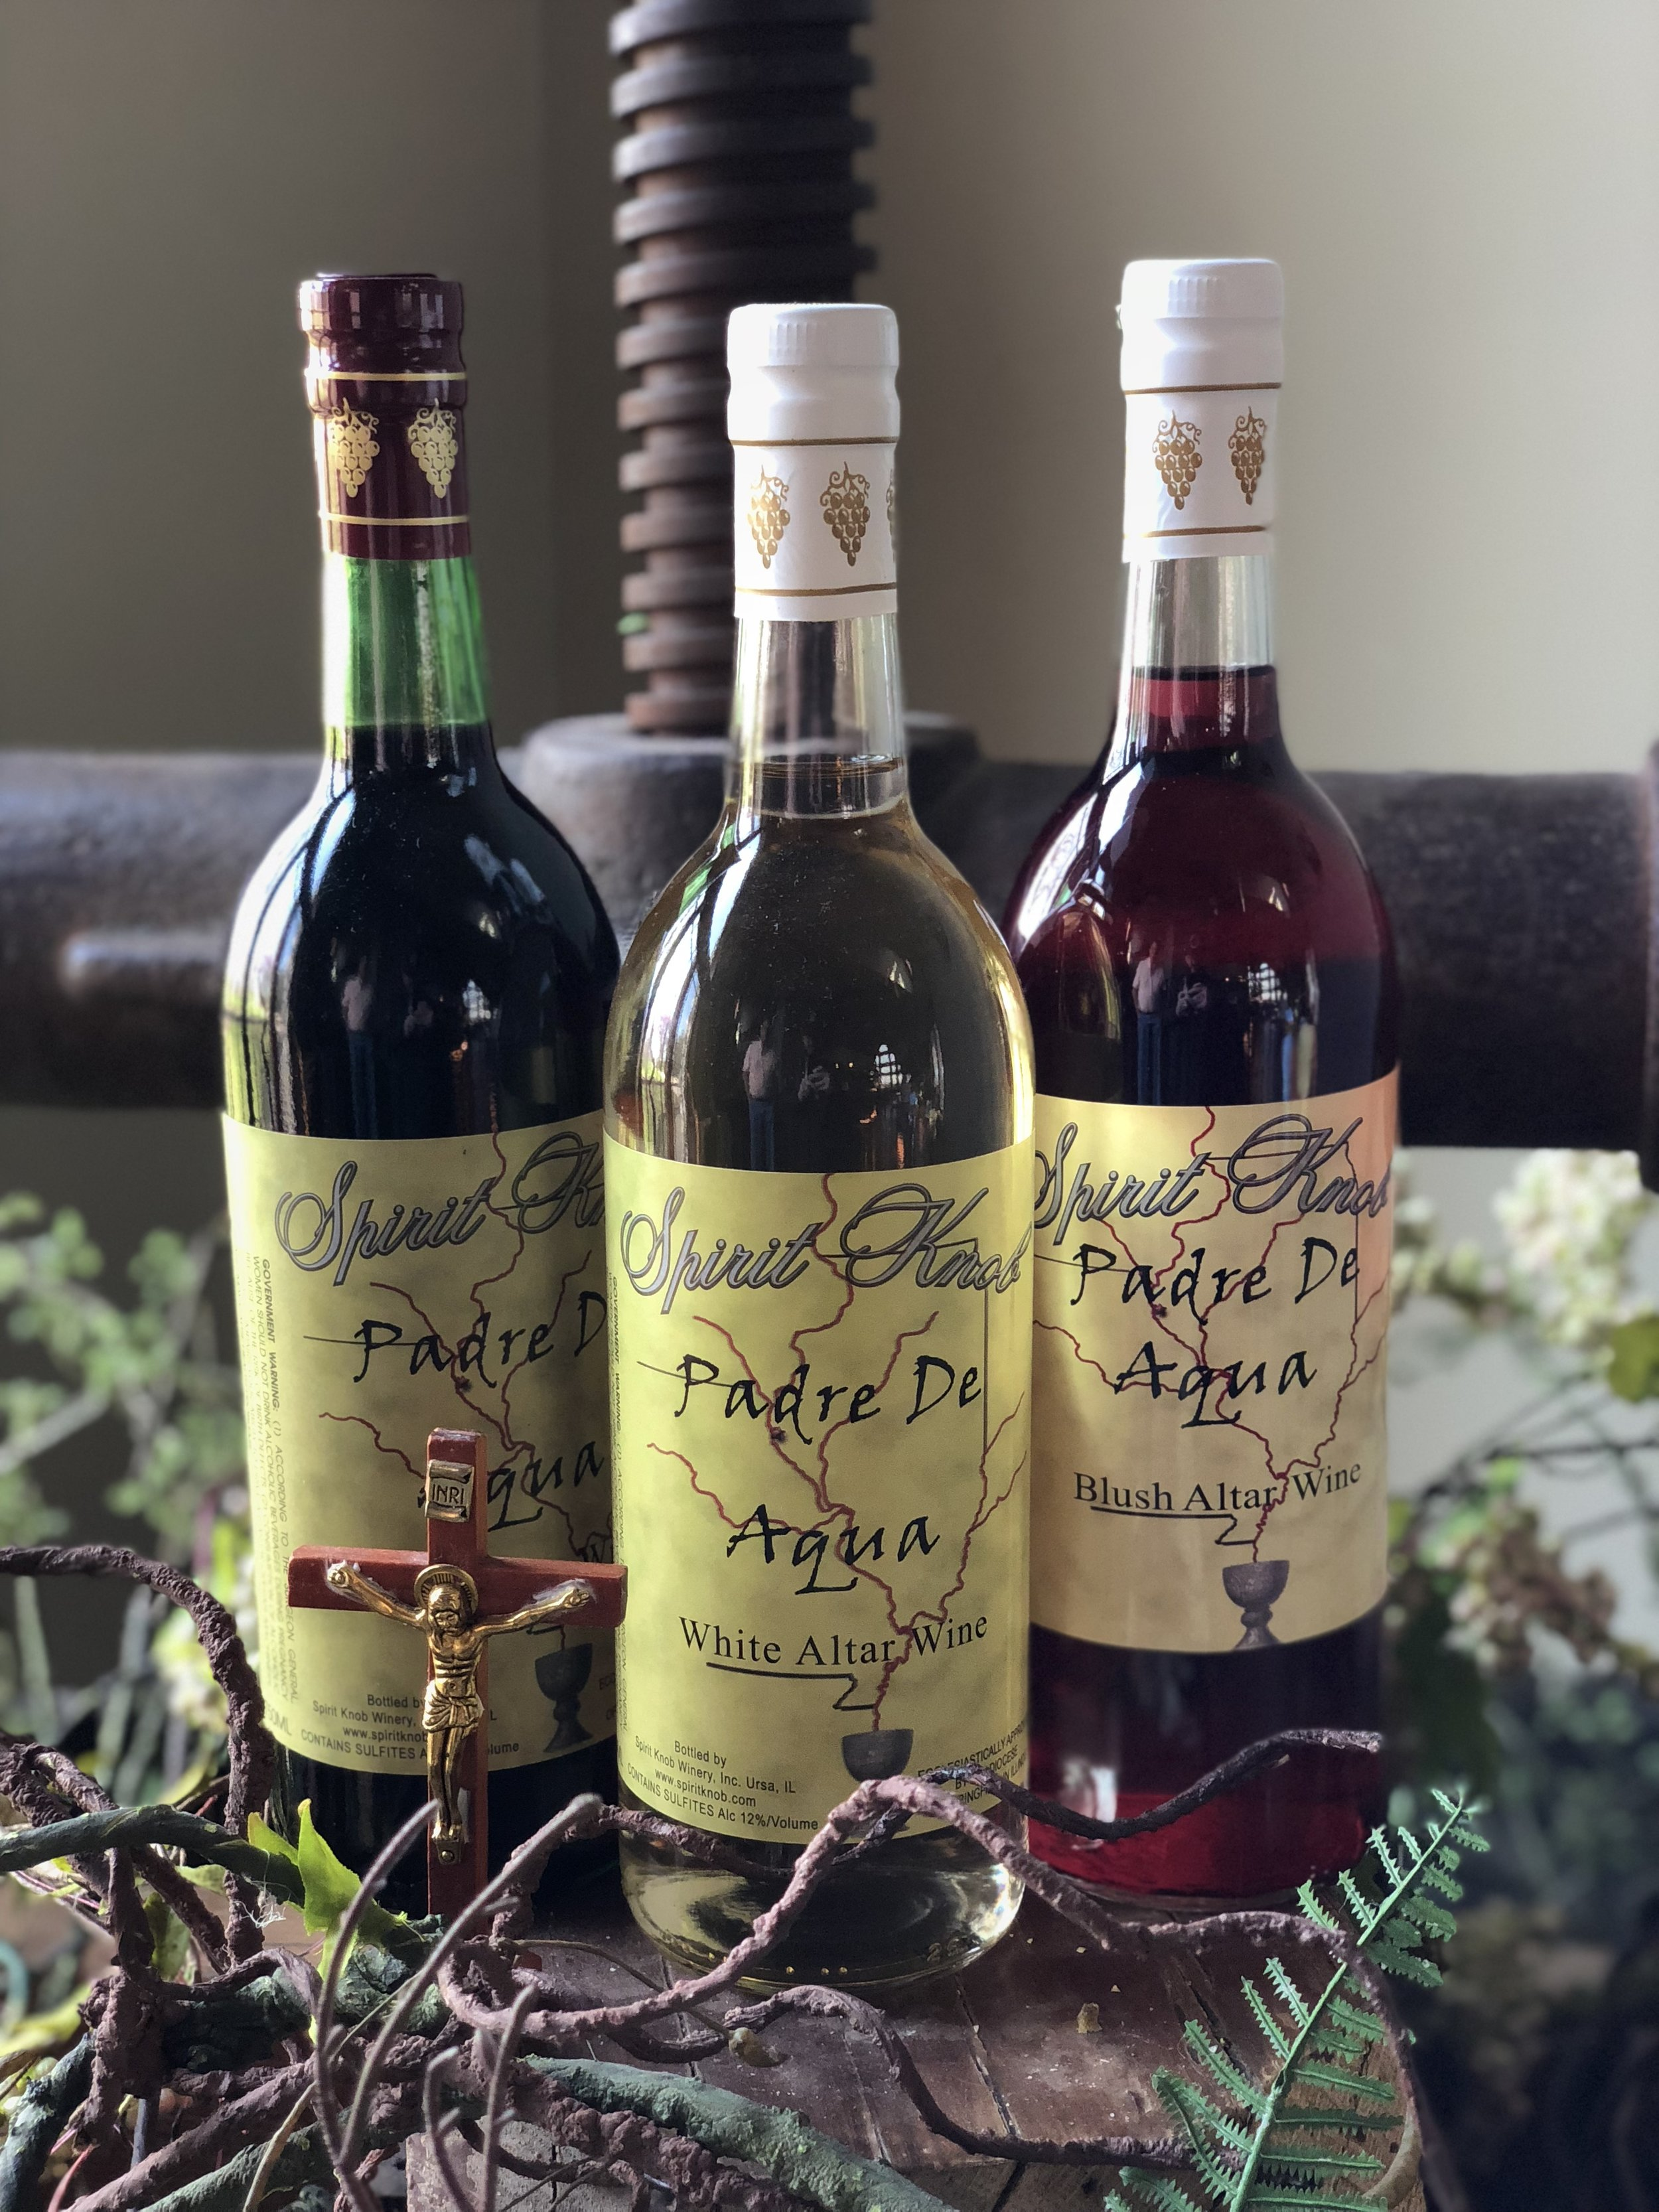 Sacramental Wine - Ecclesiastically approved by the Catholic diocese of Springfield Illinois. Contact Spirit Knob Winery directly for more information.